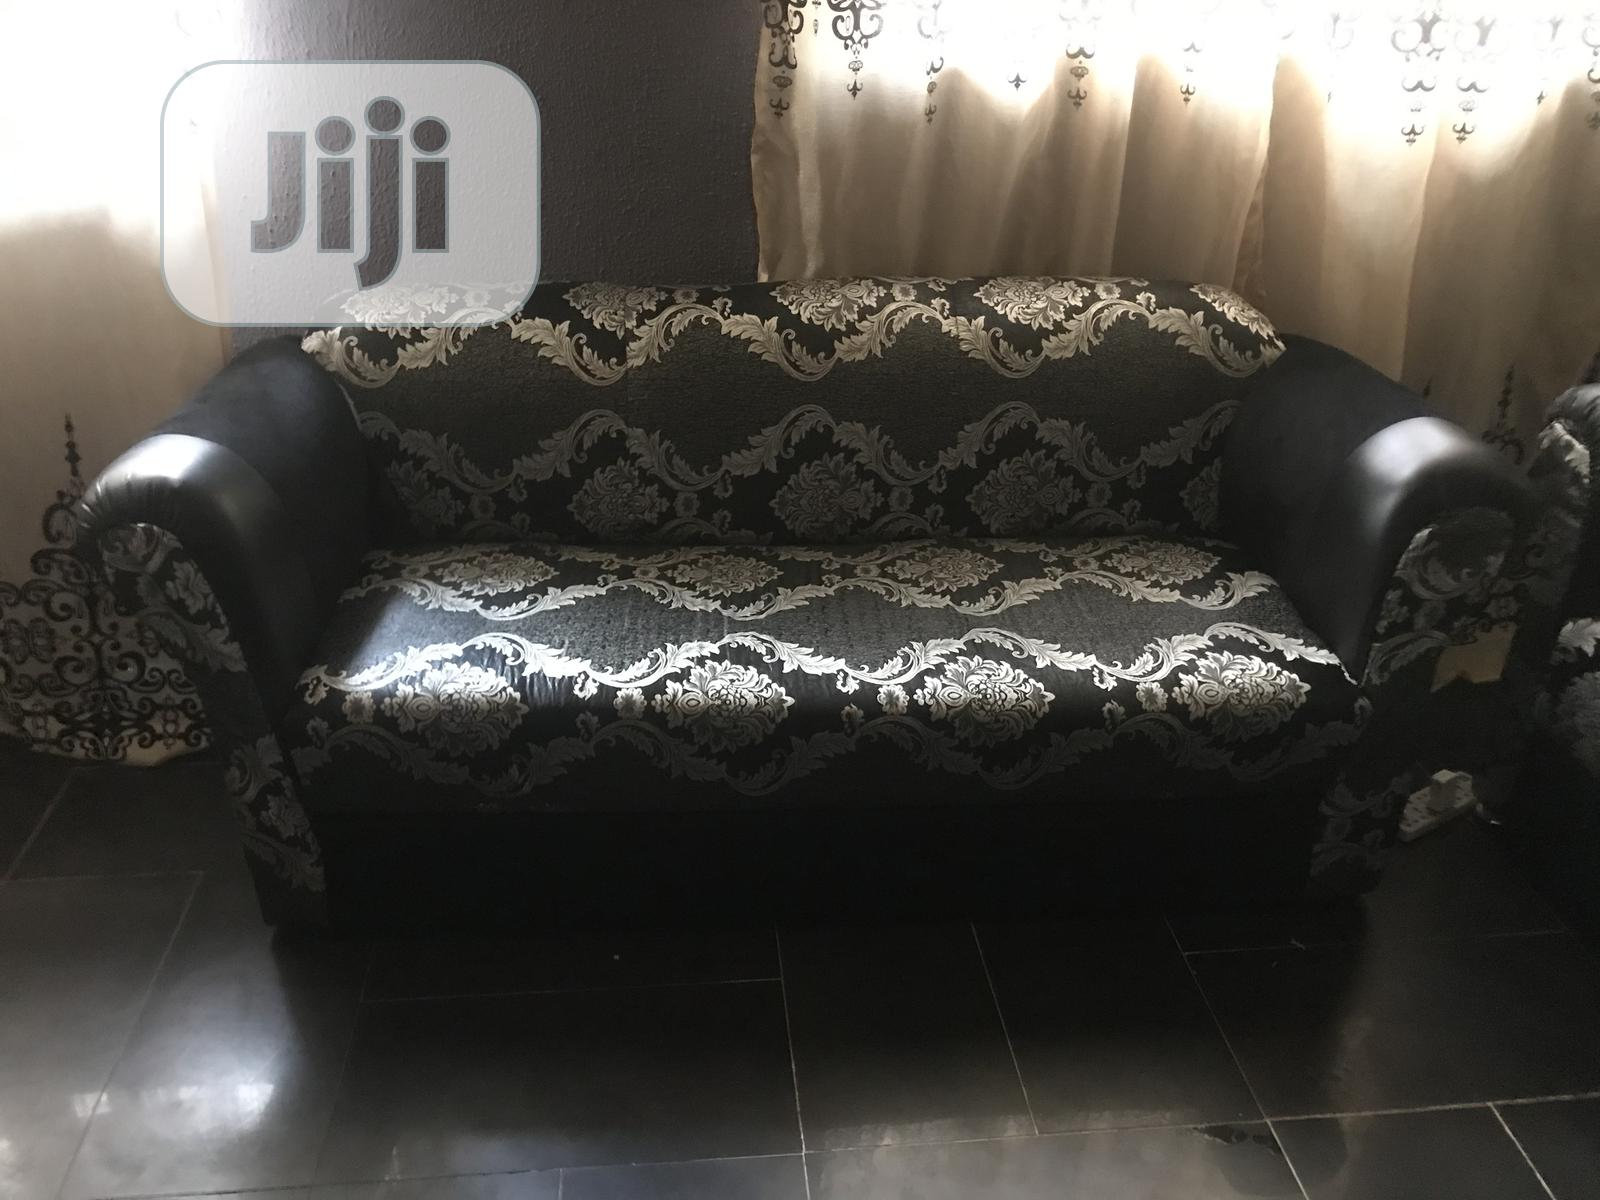 Full Set of Furniture Made of Everlasting Wood | Furniture for sale in Ibadan, Oyo State, Nigeria